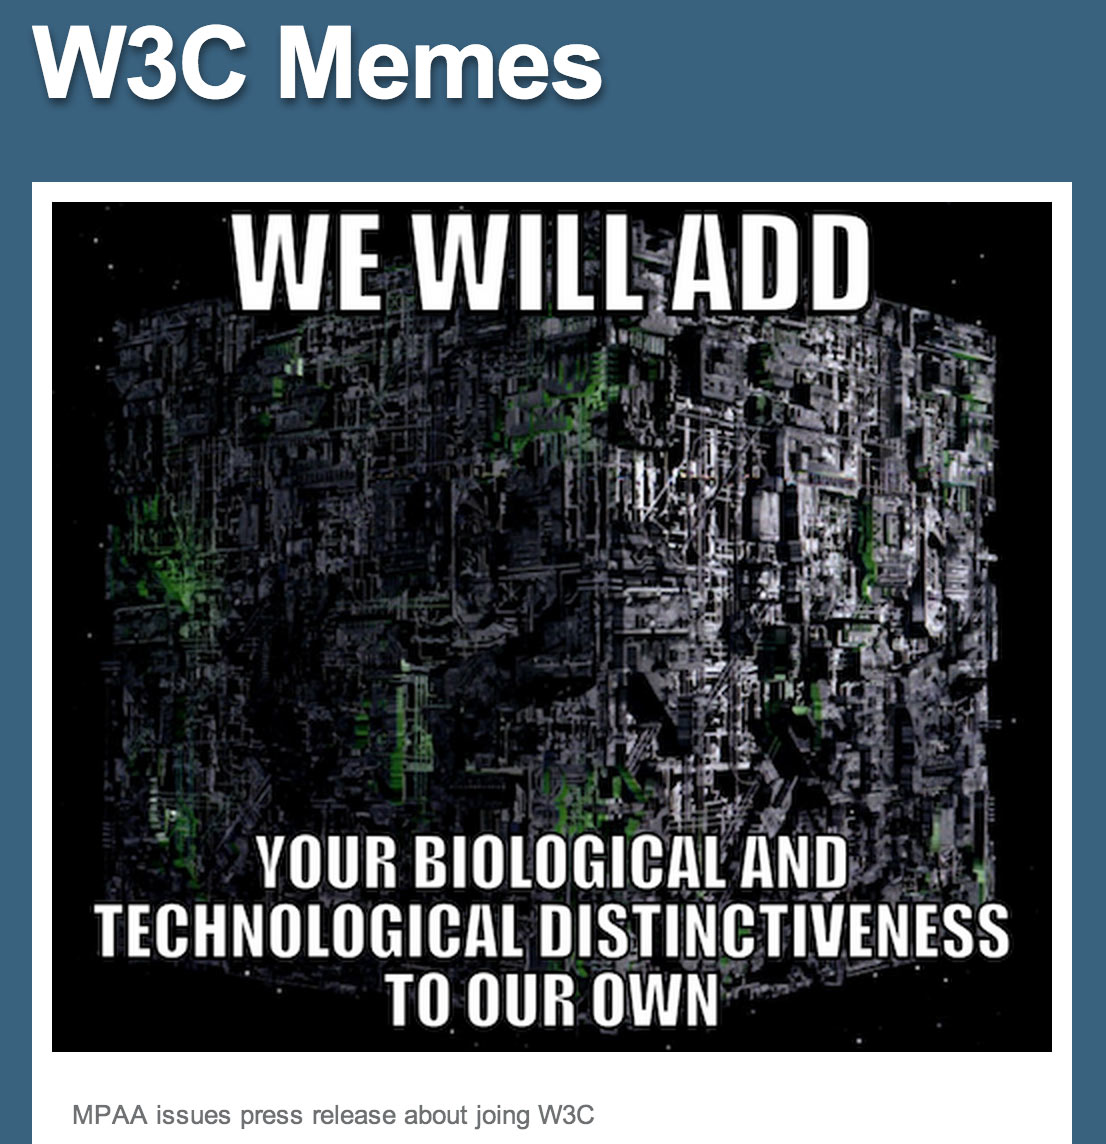 The wry W3C Memes blog mocked the arrival of the MPAA at the W3C by likening it to Star Trek's merciless Borg aliens assimilating humans.